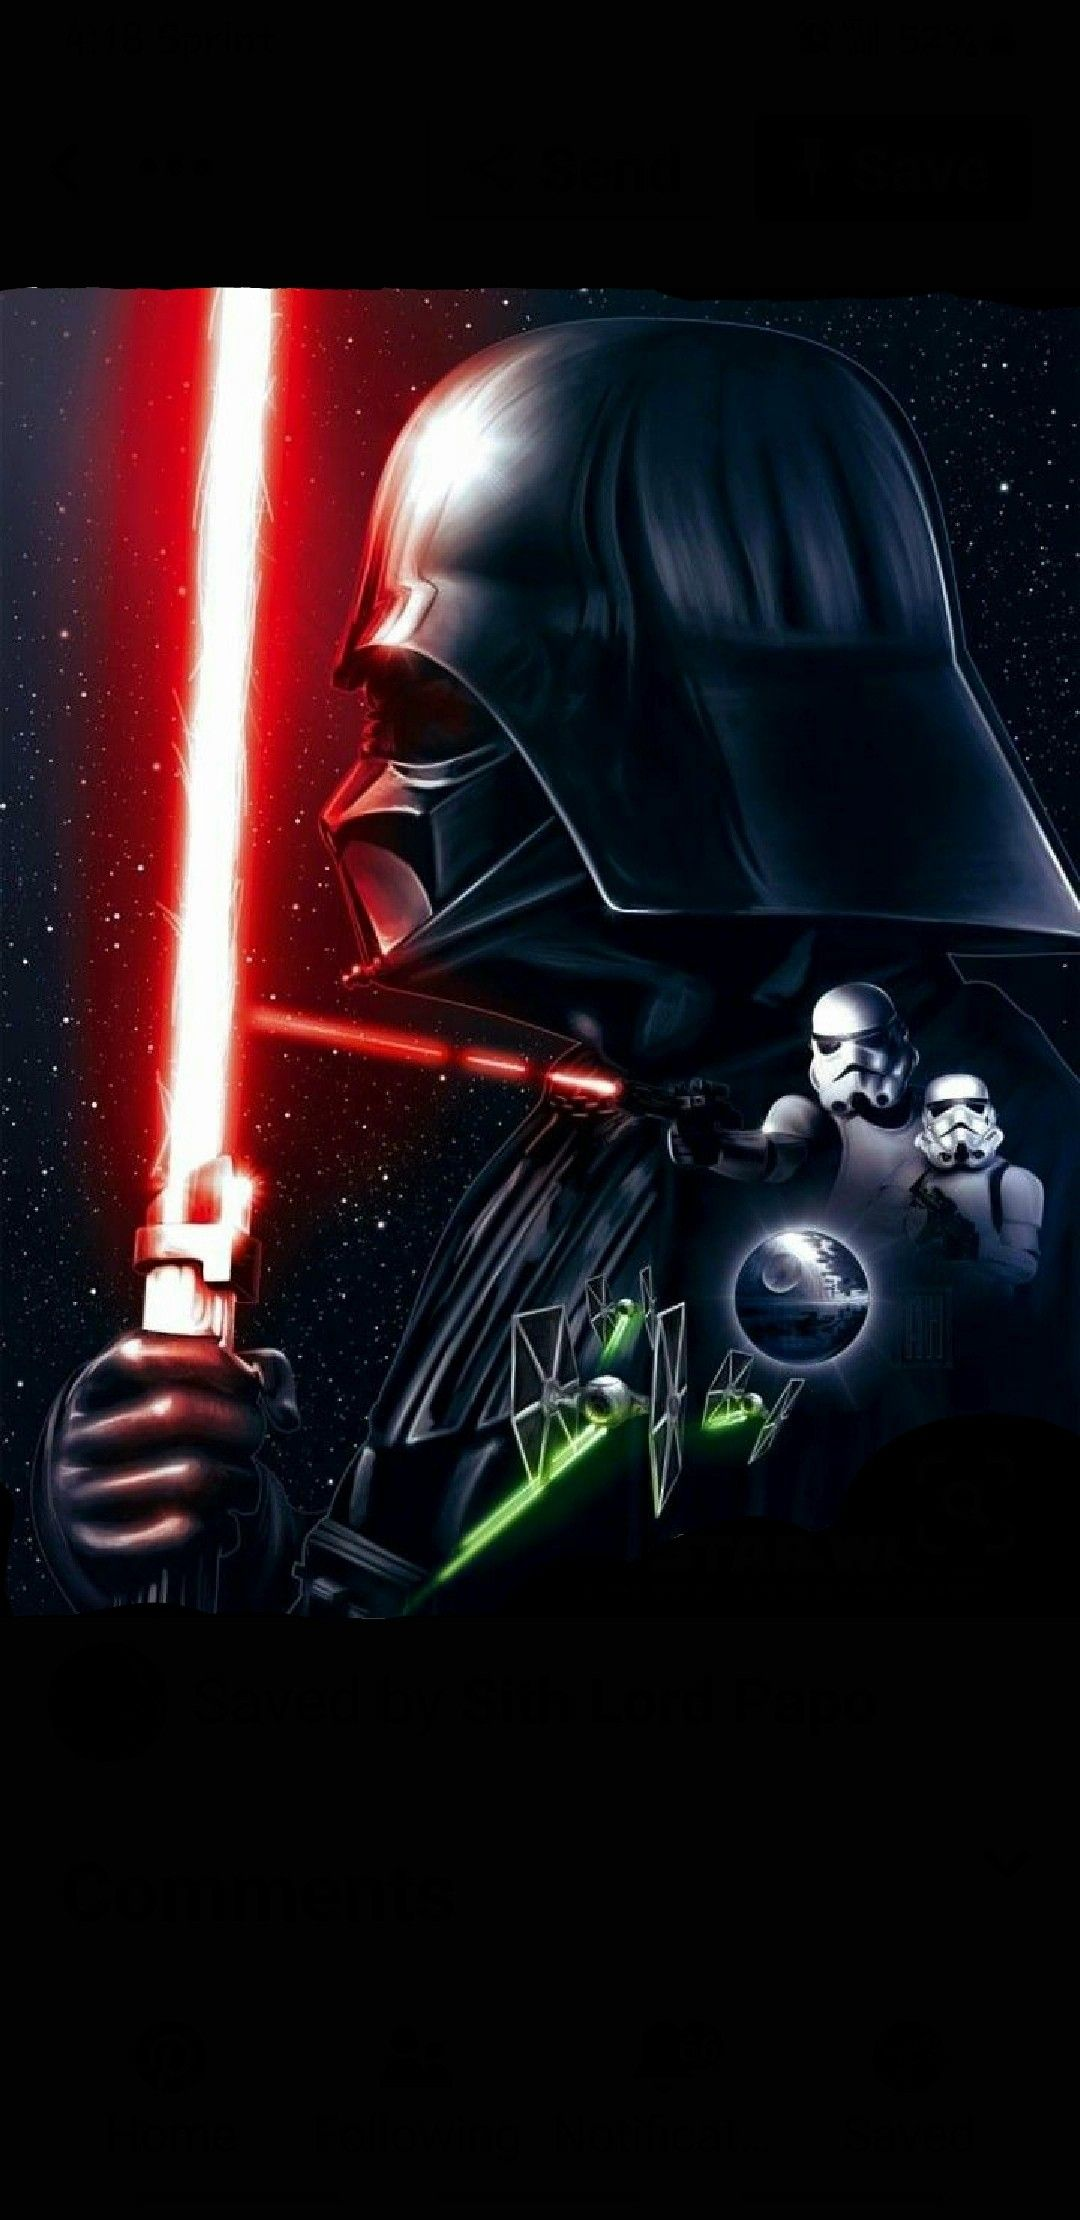 45++ Book of sith secrets from the dark side vault edition ideas in 2021